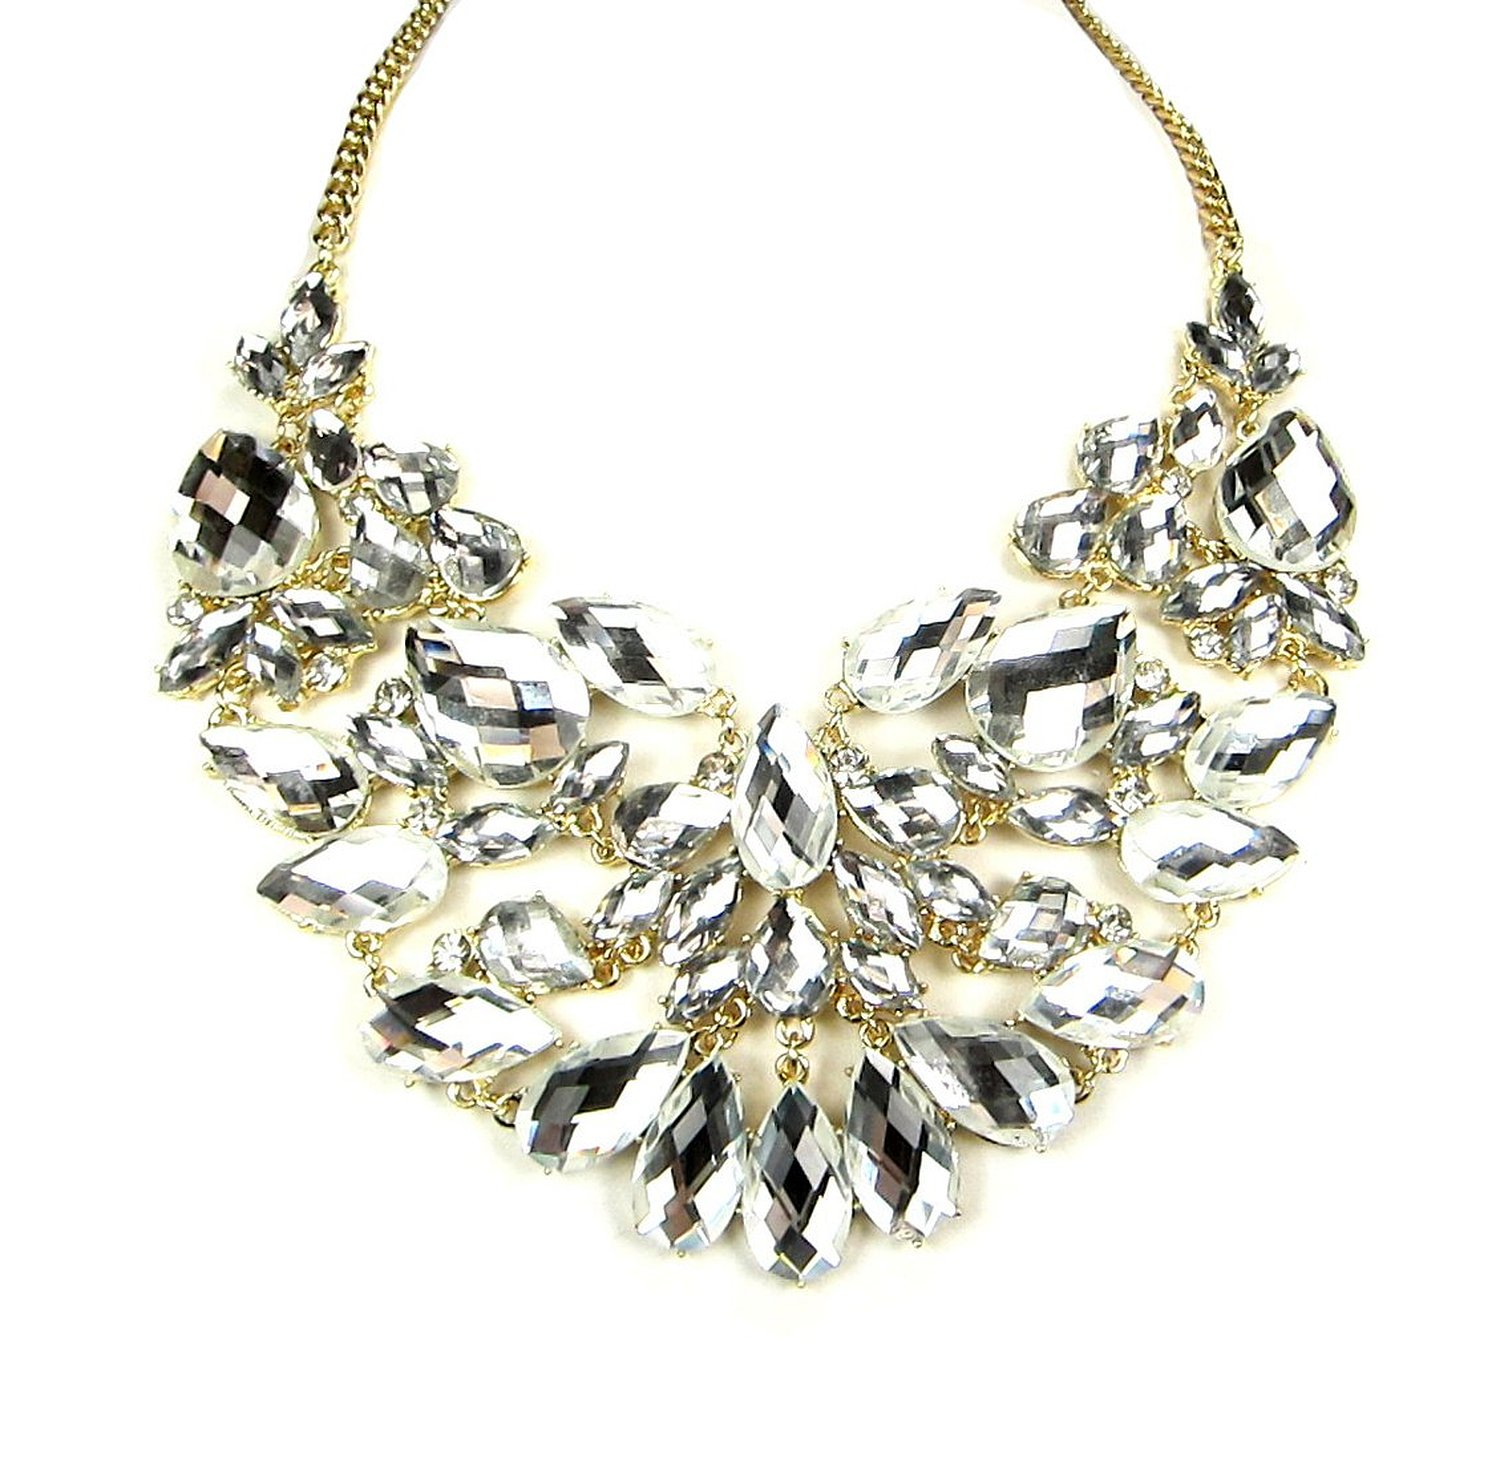 How to use a Jewelry.com coupon